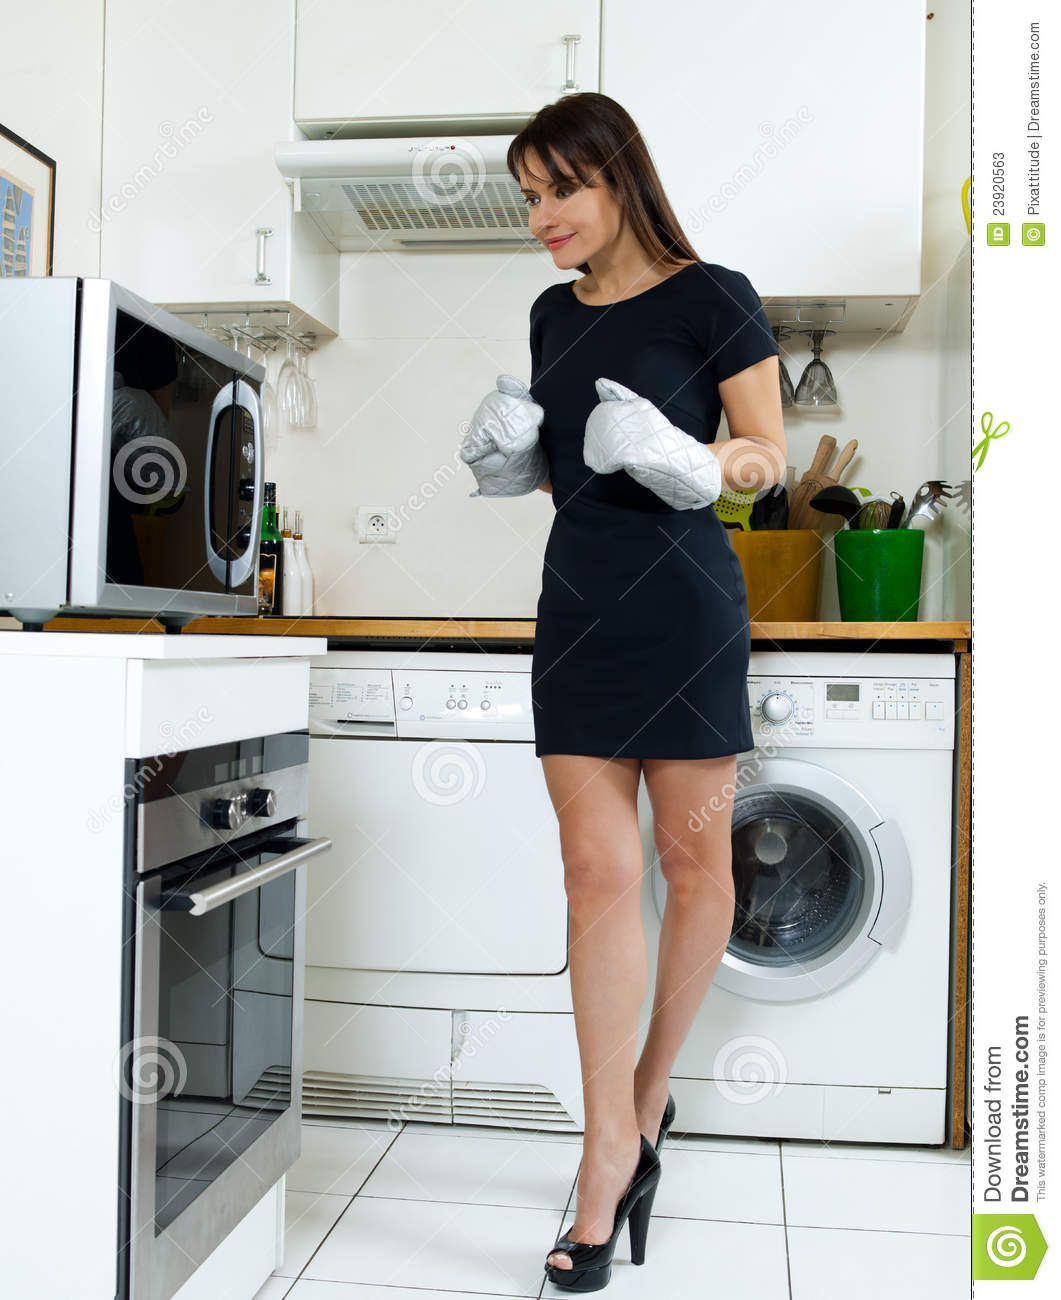 Women Kitchen: Funny Woman Cooking Stock Image. Image Of Cooking